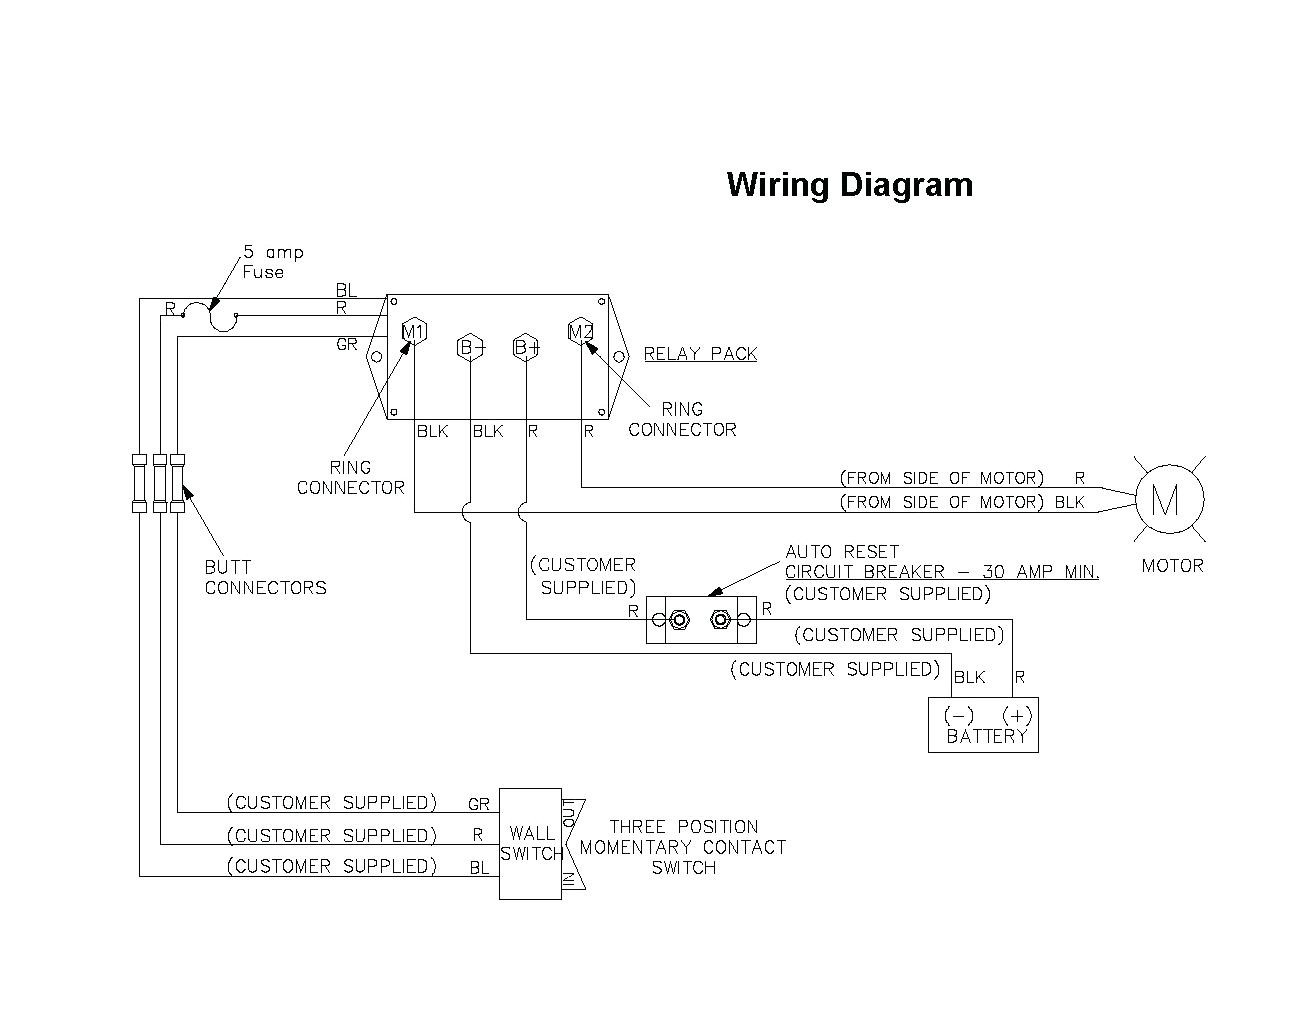 Cougar 5th Wheel Wiring Diagram | Wiring Diagram on car audio install diagrams, auto frame diagrams, auto diagnostics, chevy truck diagrams, auto steering diagrams, auto interior diagrams, blank diagrams, zenith carburetors diagrams, electrical diagrams, auto blueprints, auto chassis, auto rear axle, auto lighting, auto transmission, auto tools, auto air conditioning diagrams, auto schematics, electronic circuit diagrams, auto wiring symbols, auto starter,